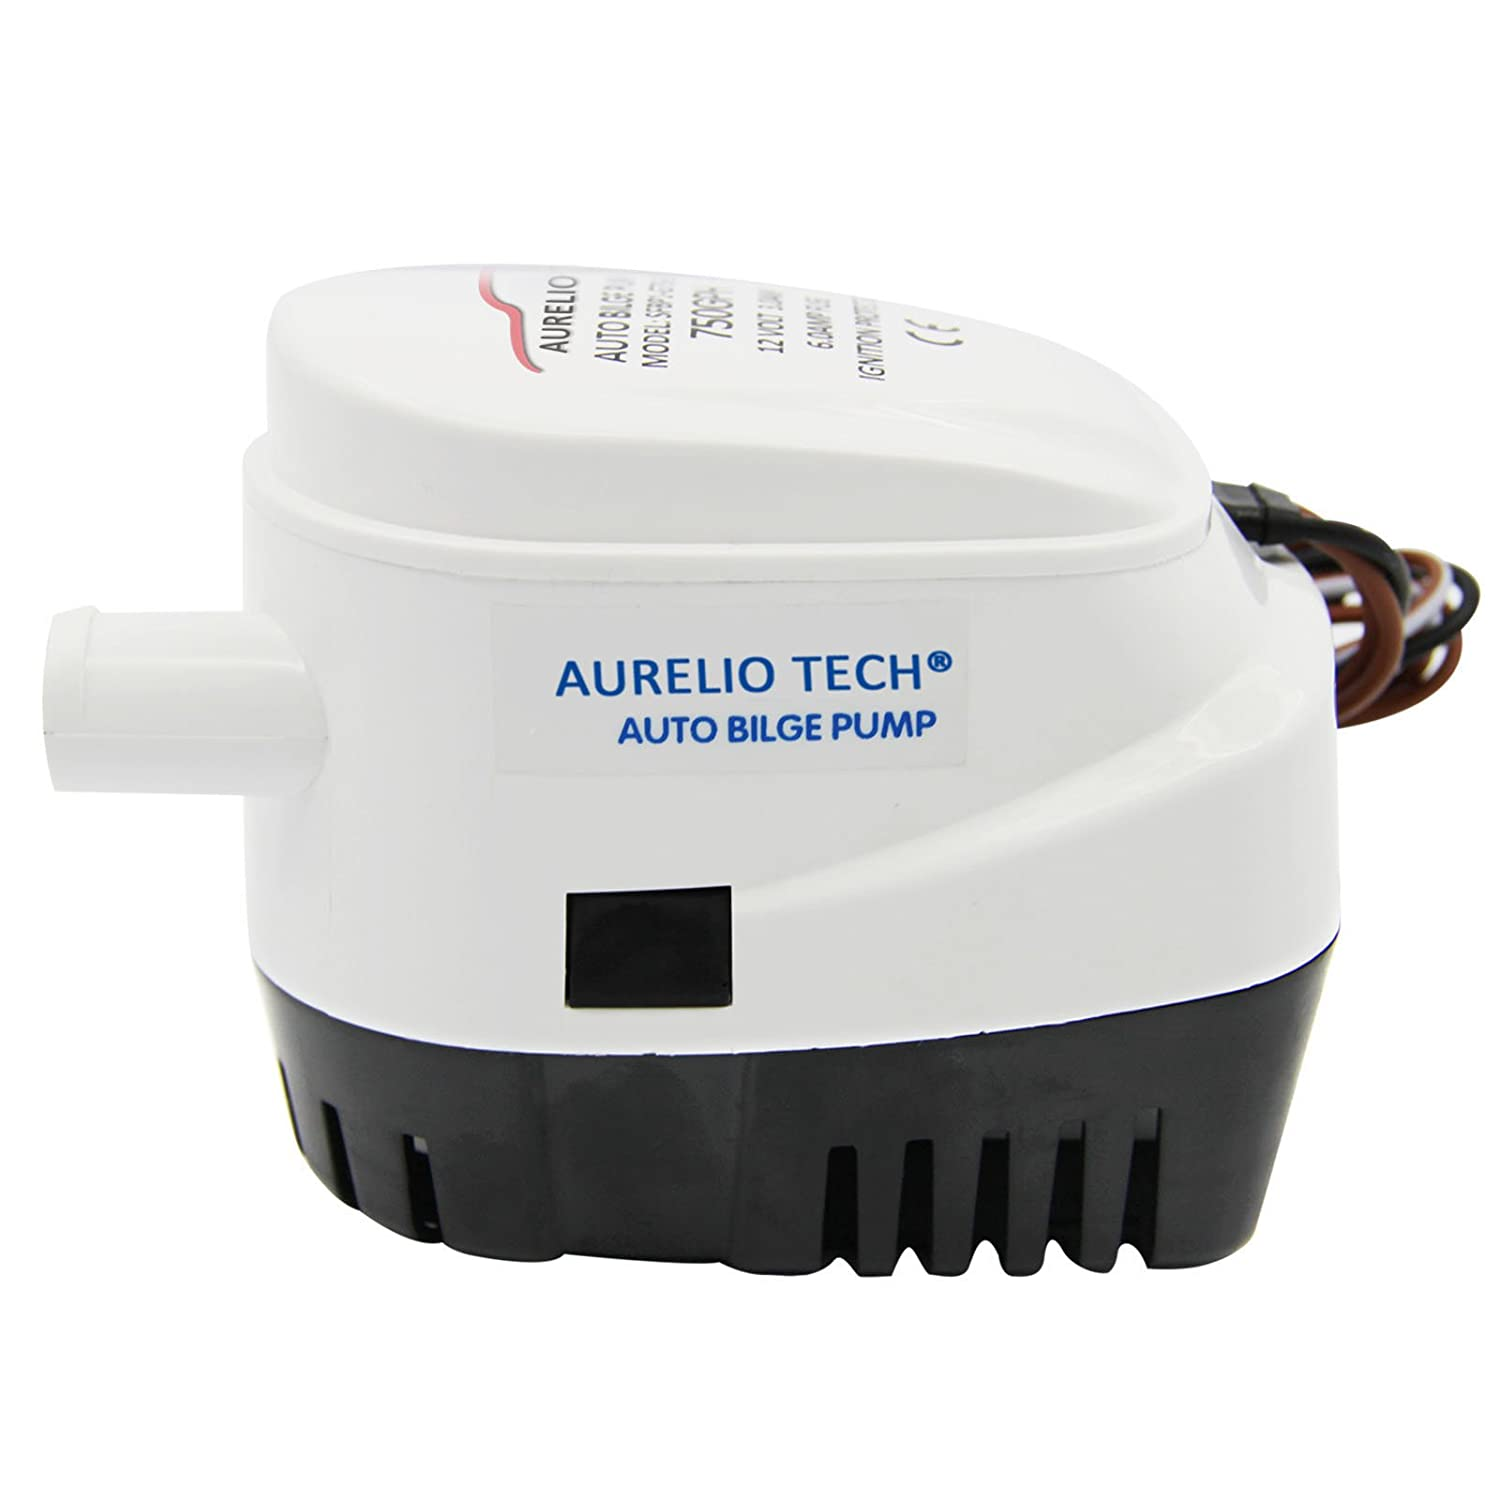 61X30Rmk3NL._SL1500_ amazon com aurelio tech 12v automatic submersible boat bilge attwood float switch wiring diagram at n-0.co